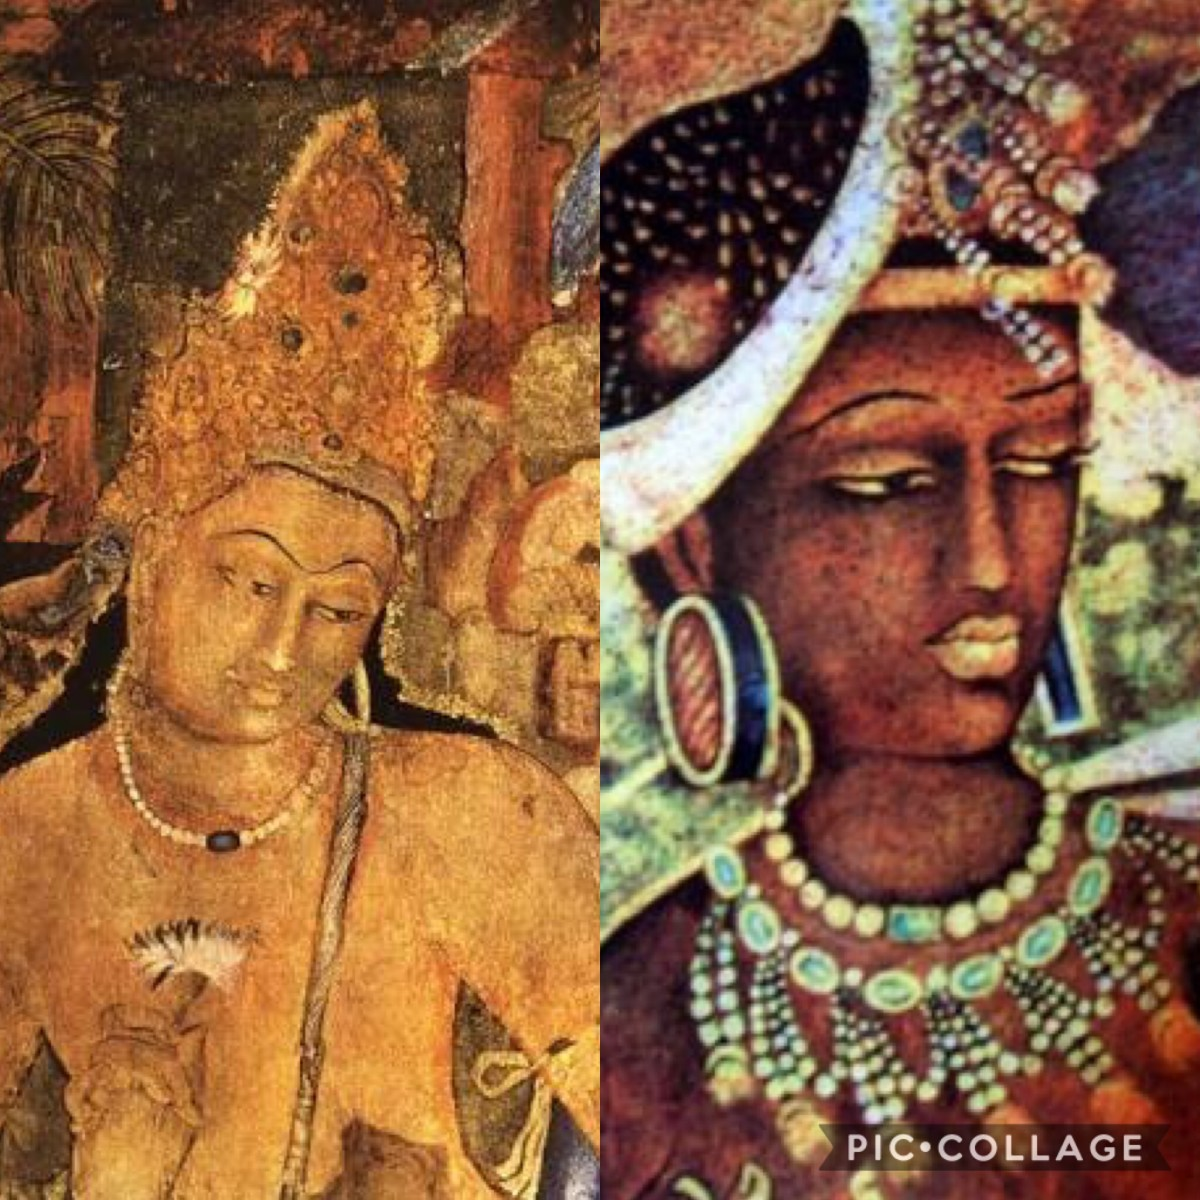 The Ancient Indian Art, Architecture, and Sculpture in the